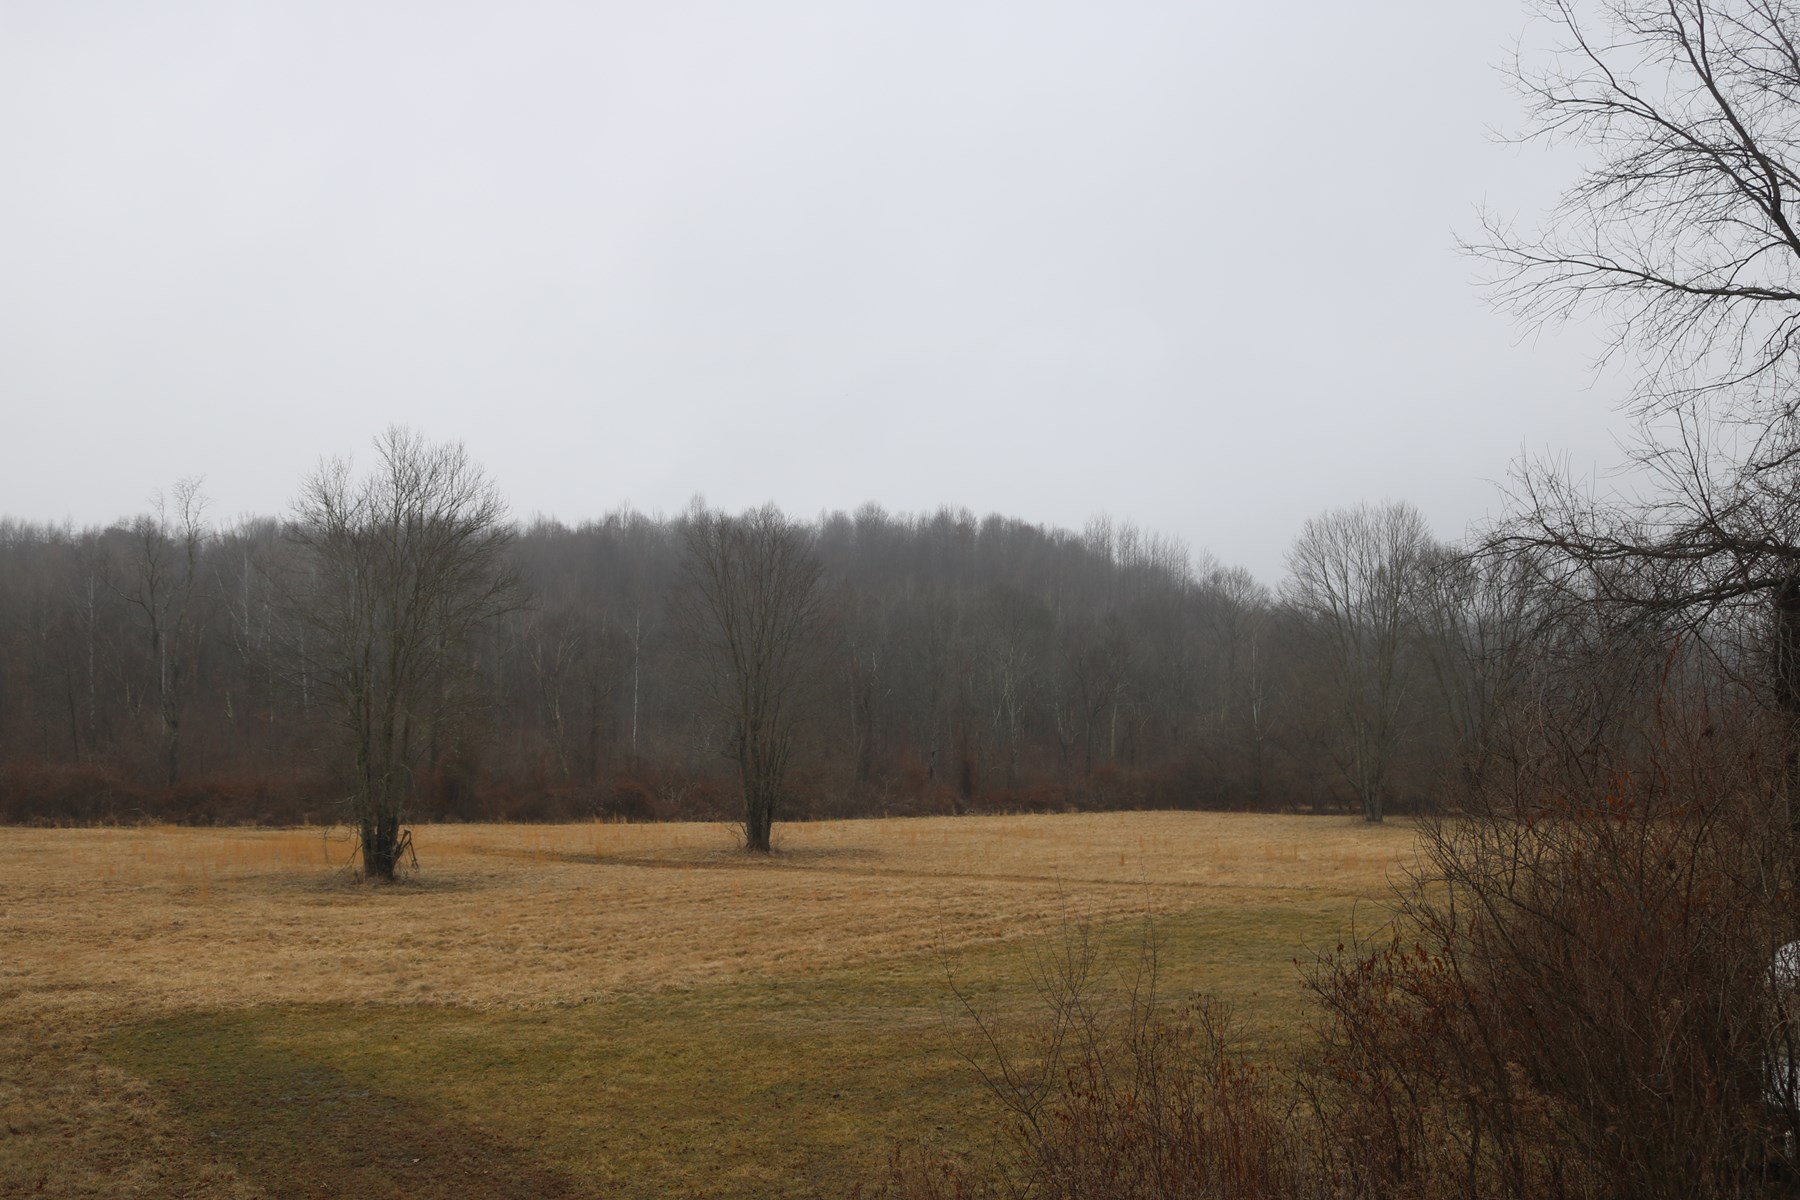 Vinton County - 36 +/- acres Vacant land